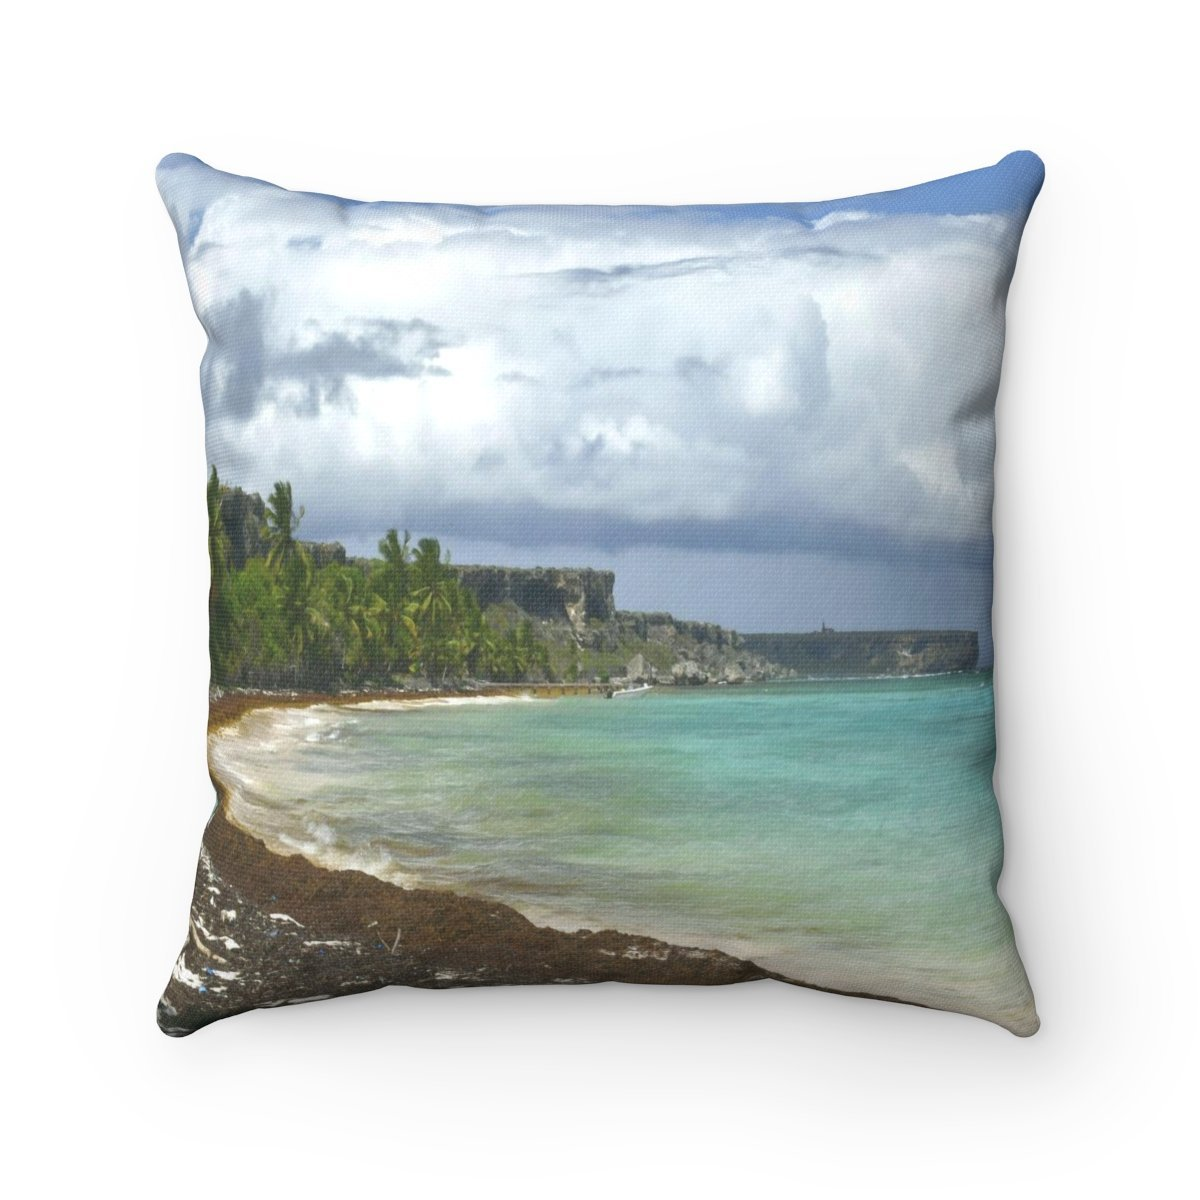 Remote Mona Island Pajaros Beach view of Plateu - Spun Polyester Square Pillow - SingleClick.store